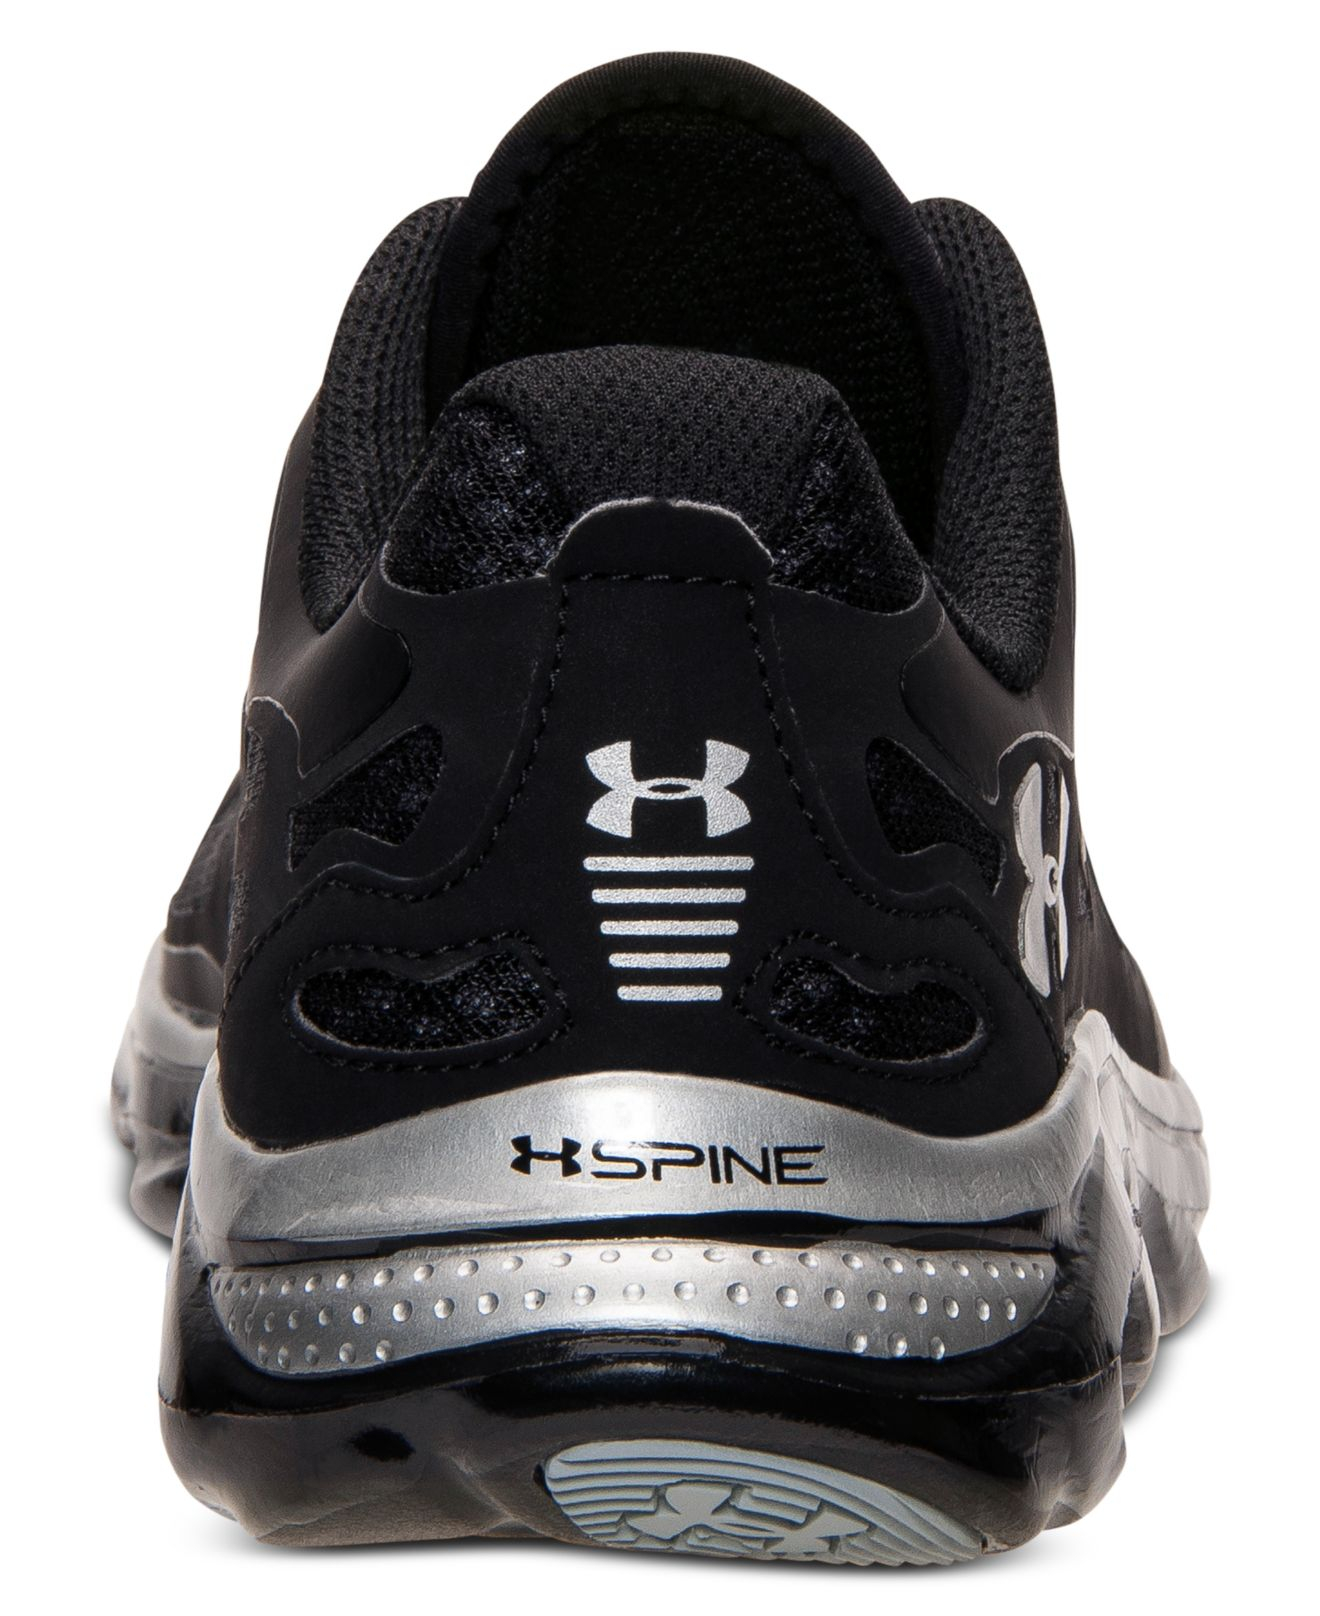 Under Armour Spine Shoes White